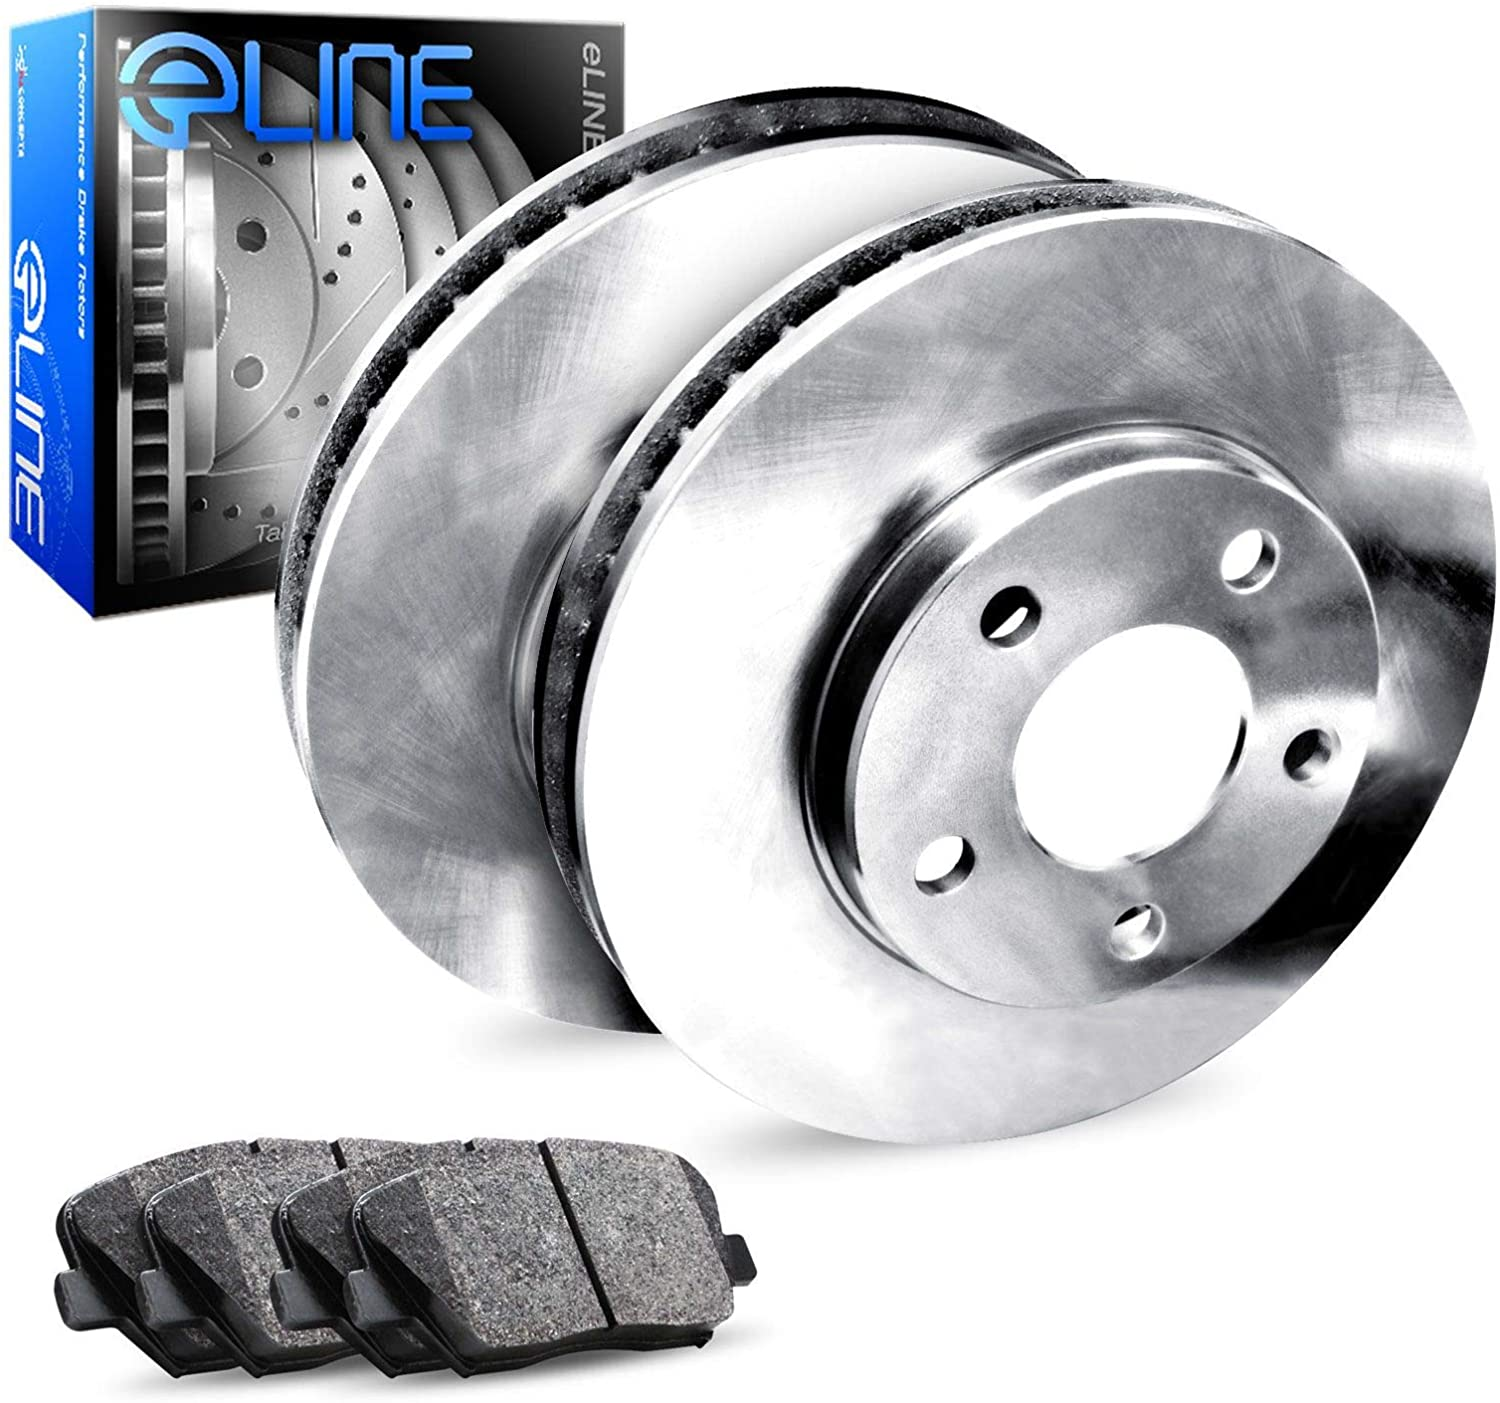 For Ford, Lincoln Crown Victoria, Town Car R1 Concepts eLine Rear Blank Brake Rotors Kit + Ceramic Pads